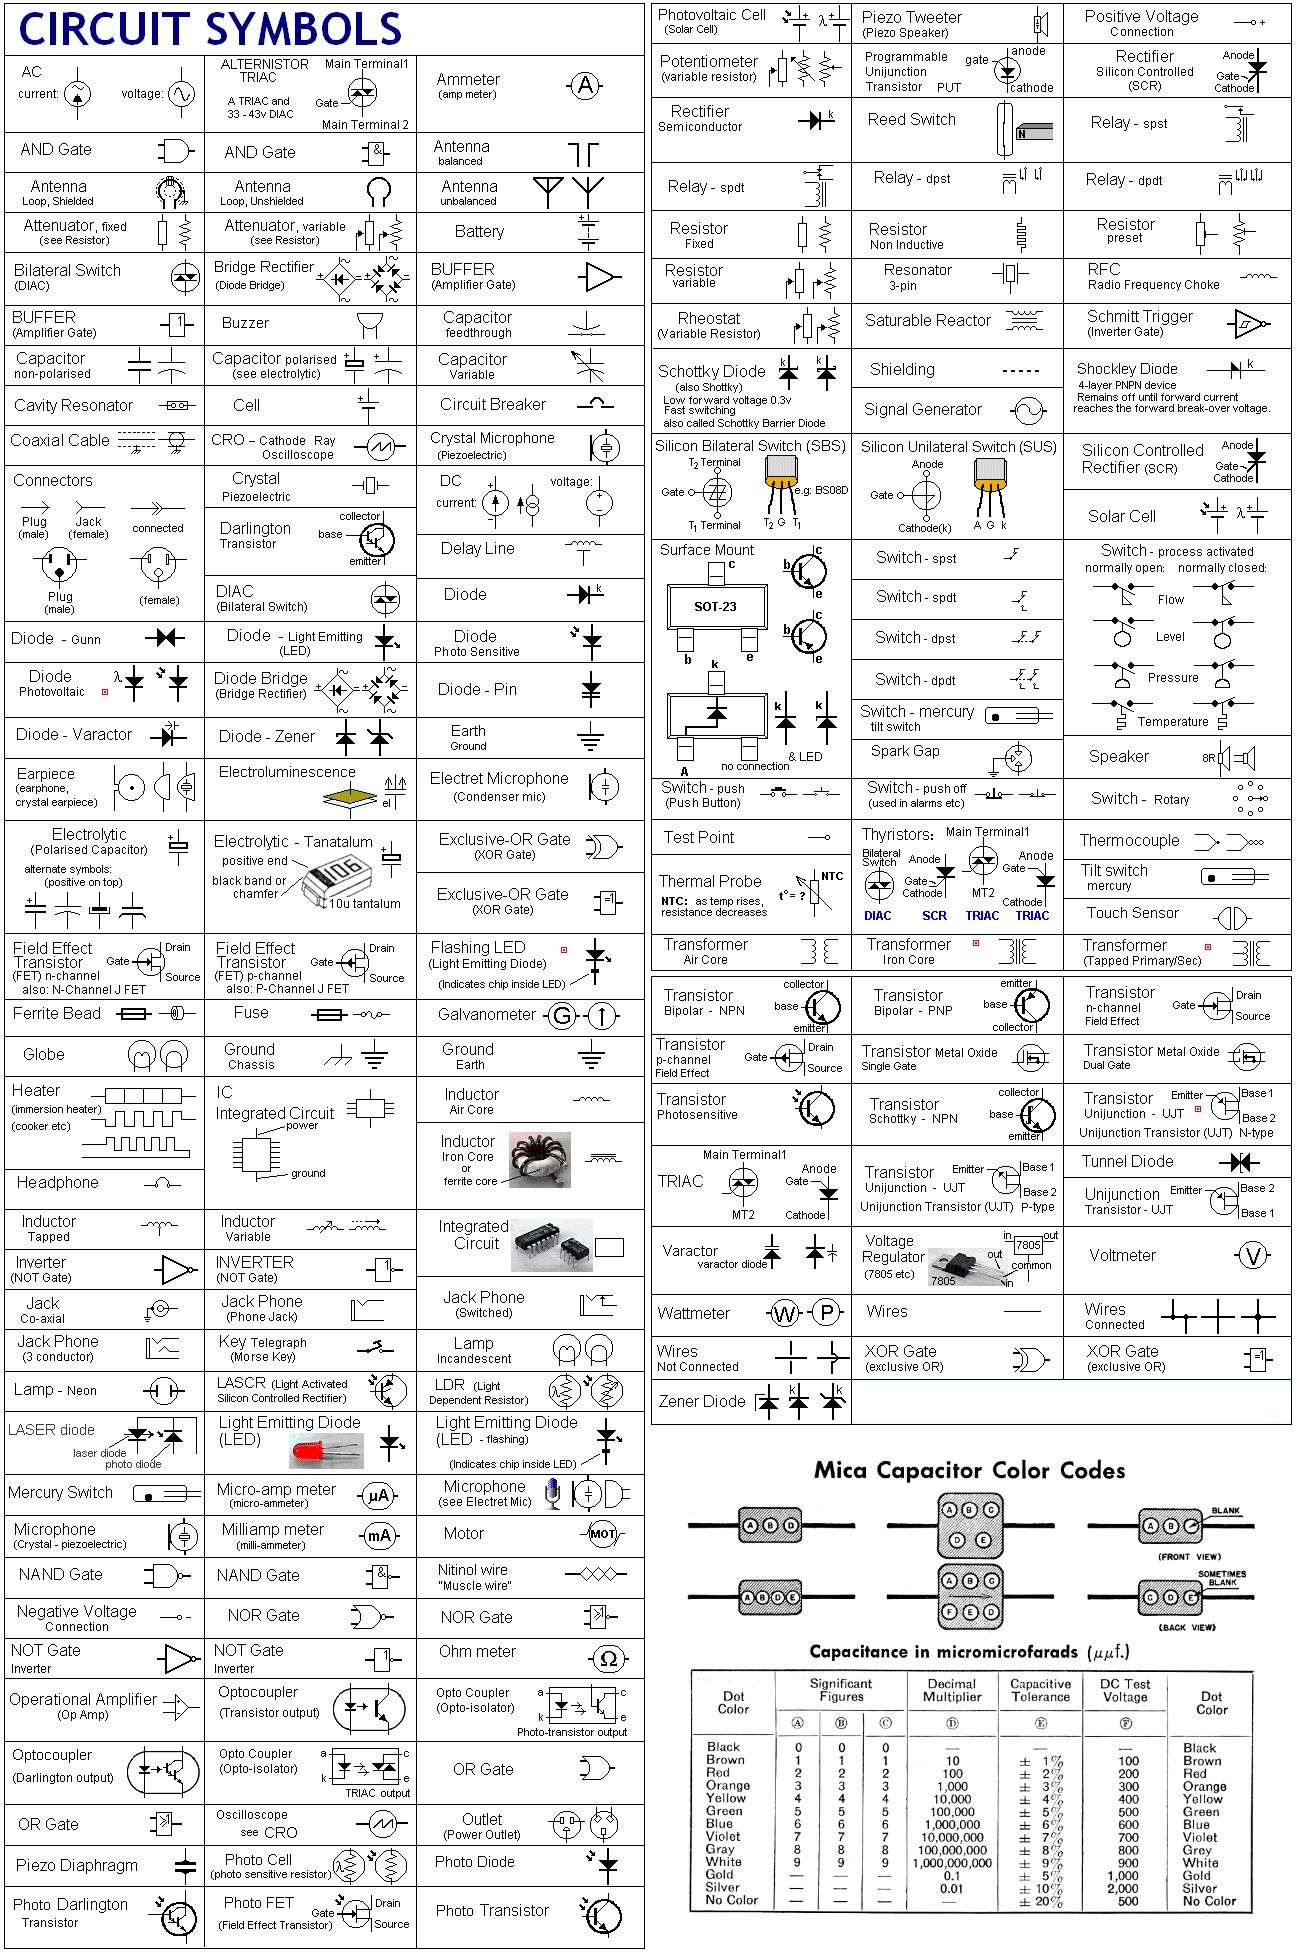 Heater Circuit Symbol Ac Schematic Symbols Excel Wiring Diagrams Chart Electric A Considerably Rh Pinterest Com Light Rectifier